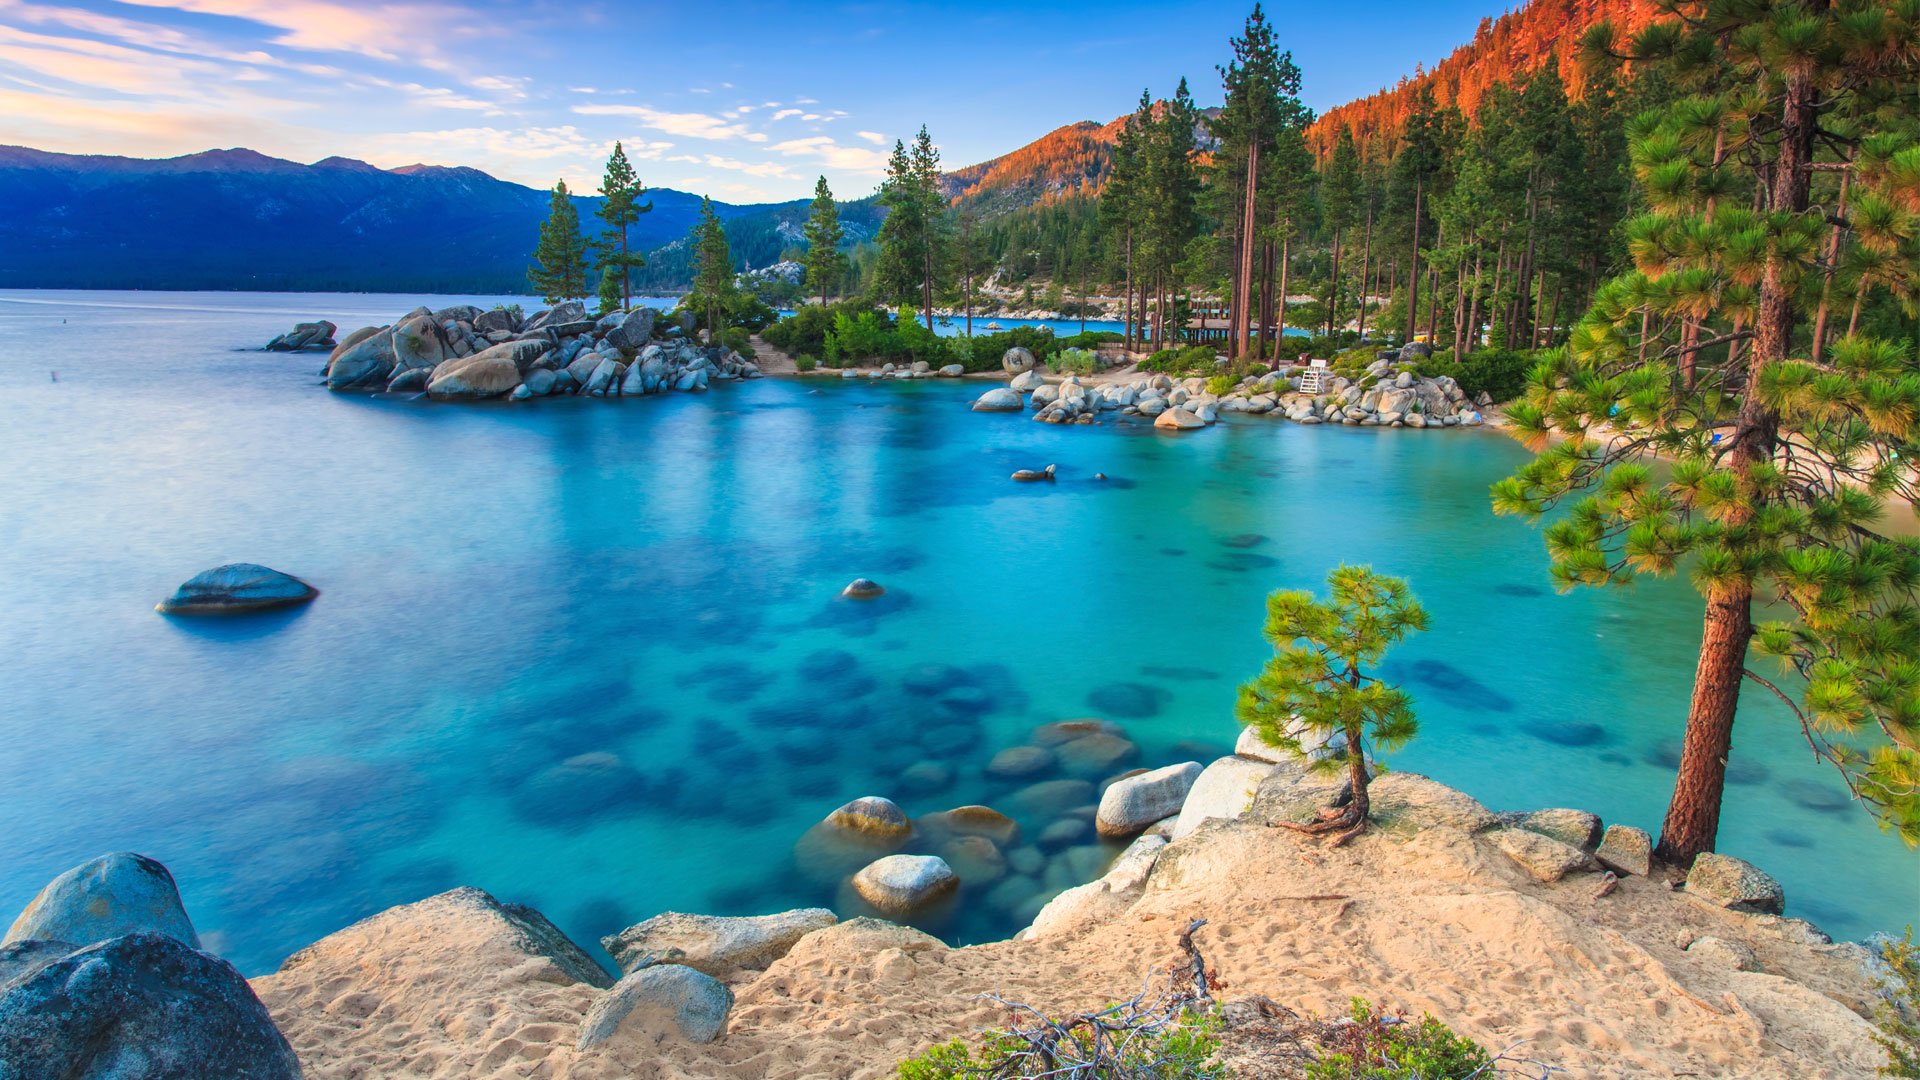 lake tahoe Complete guide to lake tahoe lodging, real estate, activities, nightlife, events and everything else you need to plan a great lake tahoe vacation.